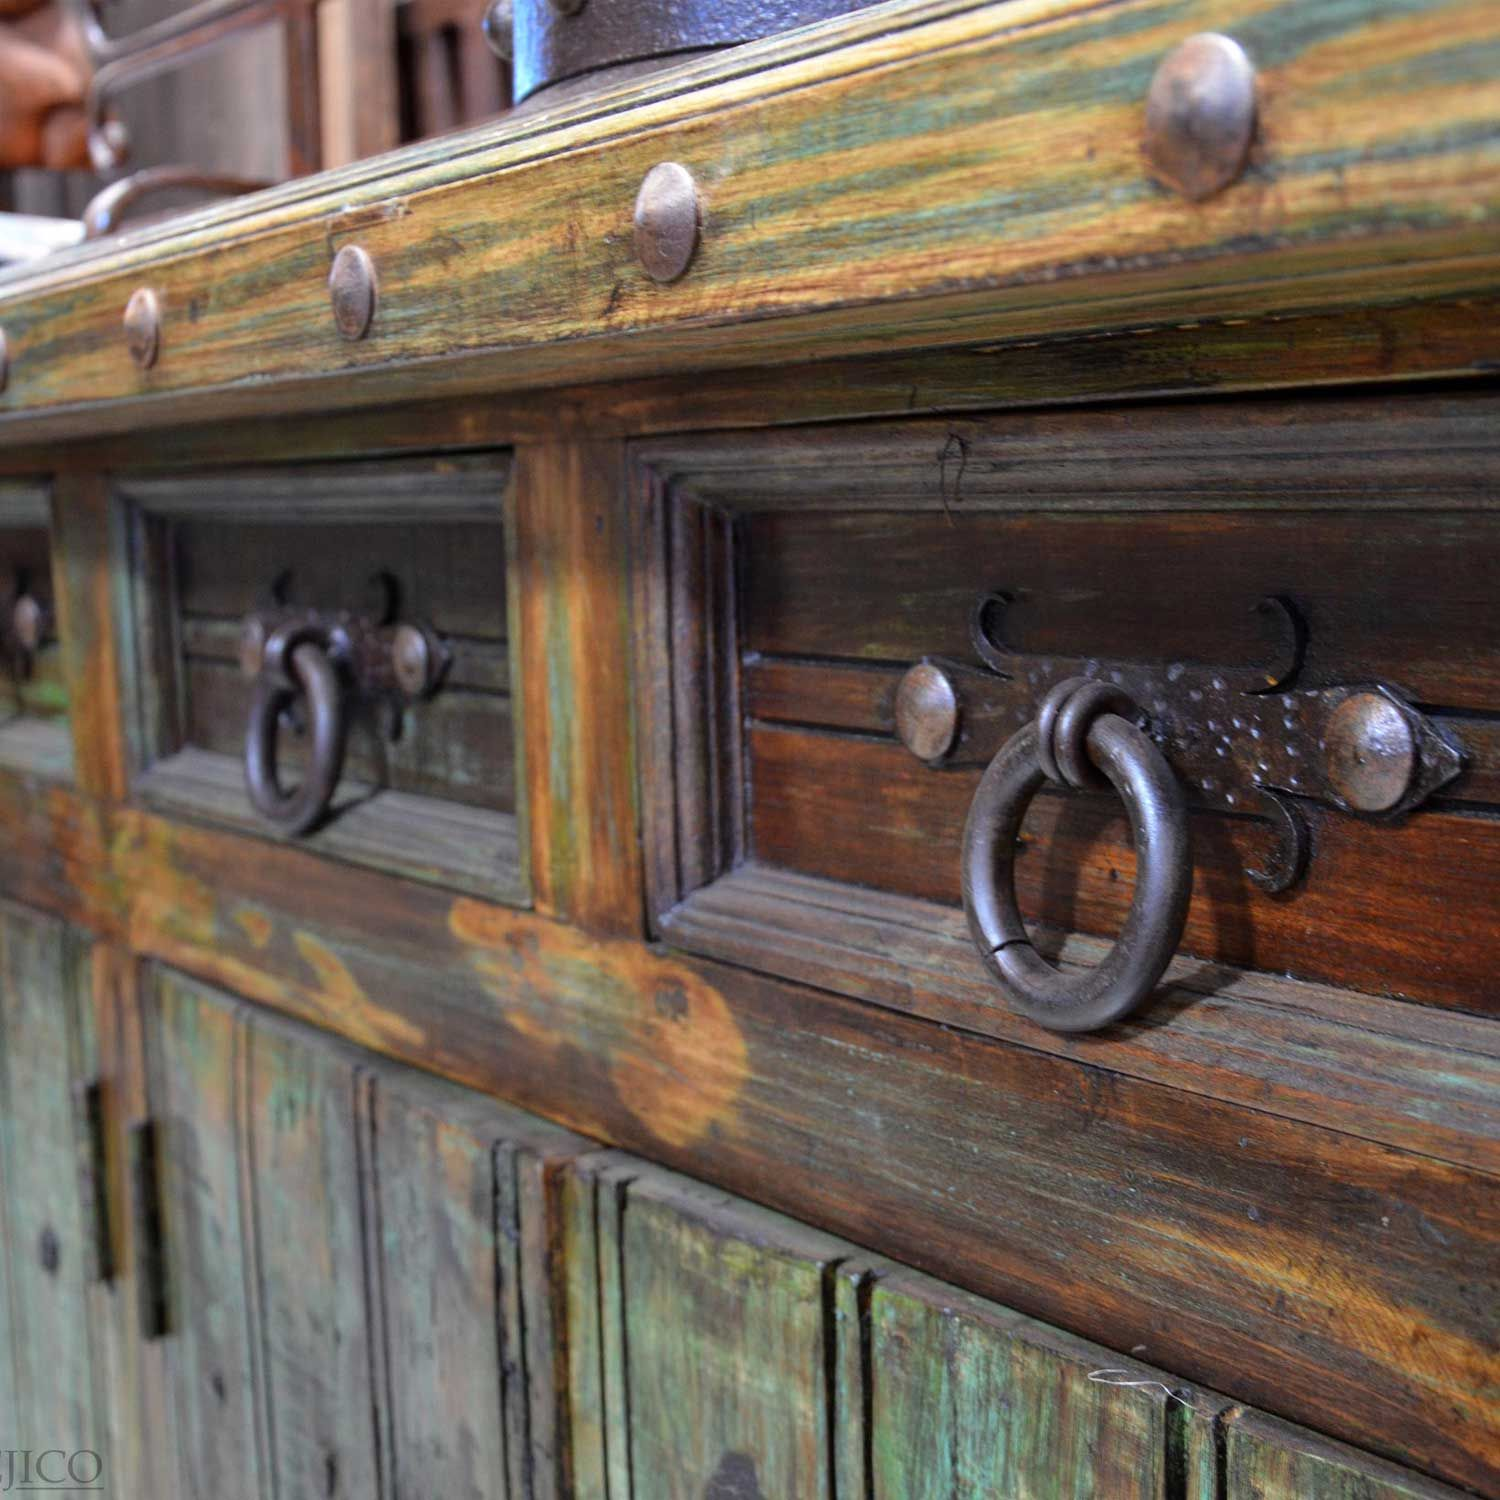 Deluxe Rustic Kitchen Cabinet Hardware | Swing Kitchen